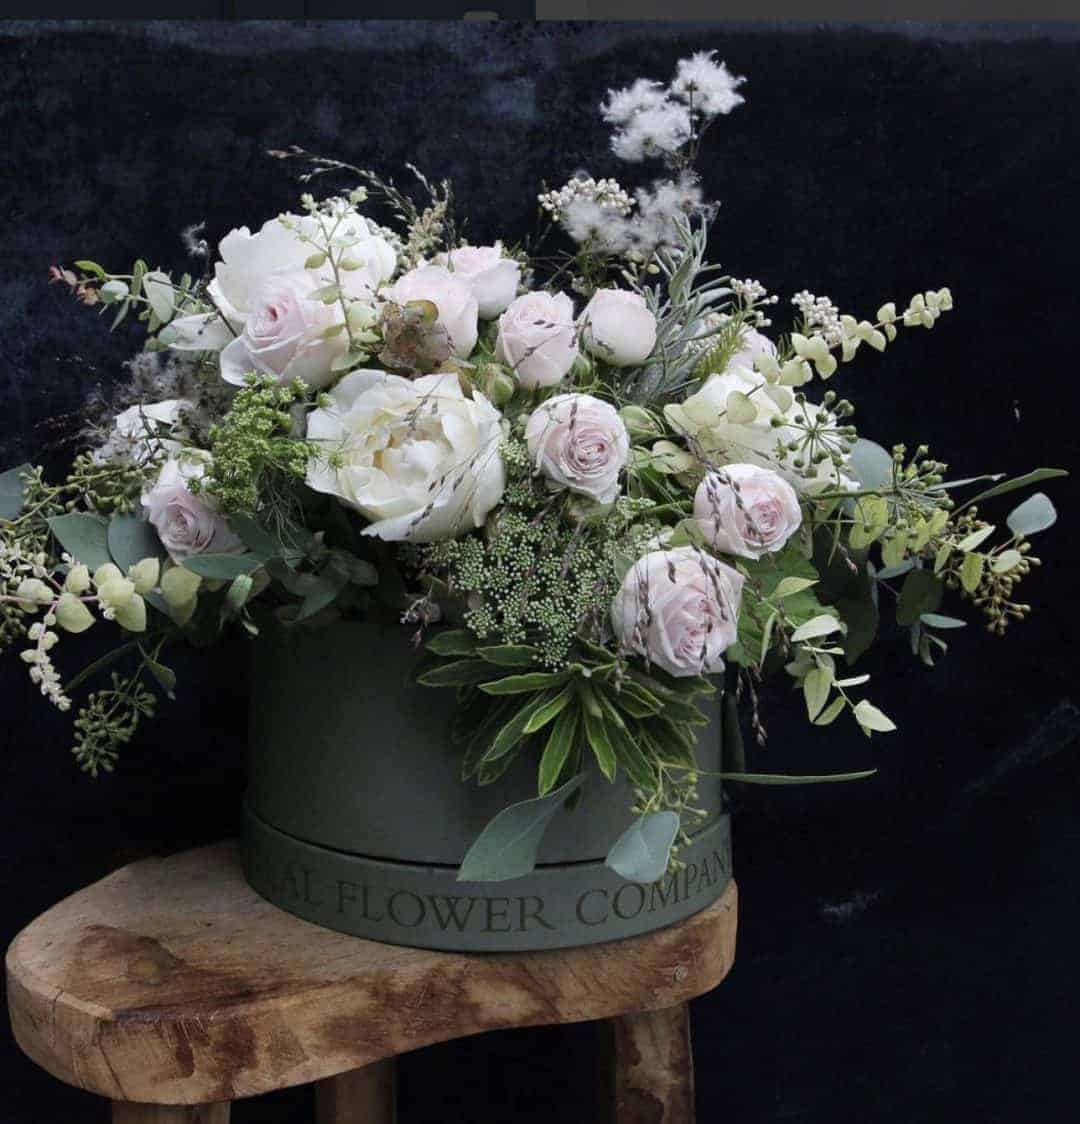 love this wintry white and pale pink christmas bouquet by The Real Flower Company in their lovely signature green hat box. Perfect for placing on your Christmas table as is. Click through for more christmas flower arrangement DIY ideas you'll love to try for adding natural festive beauty this holiday season